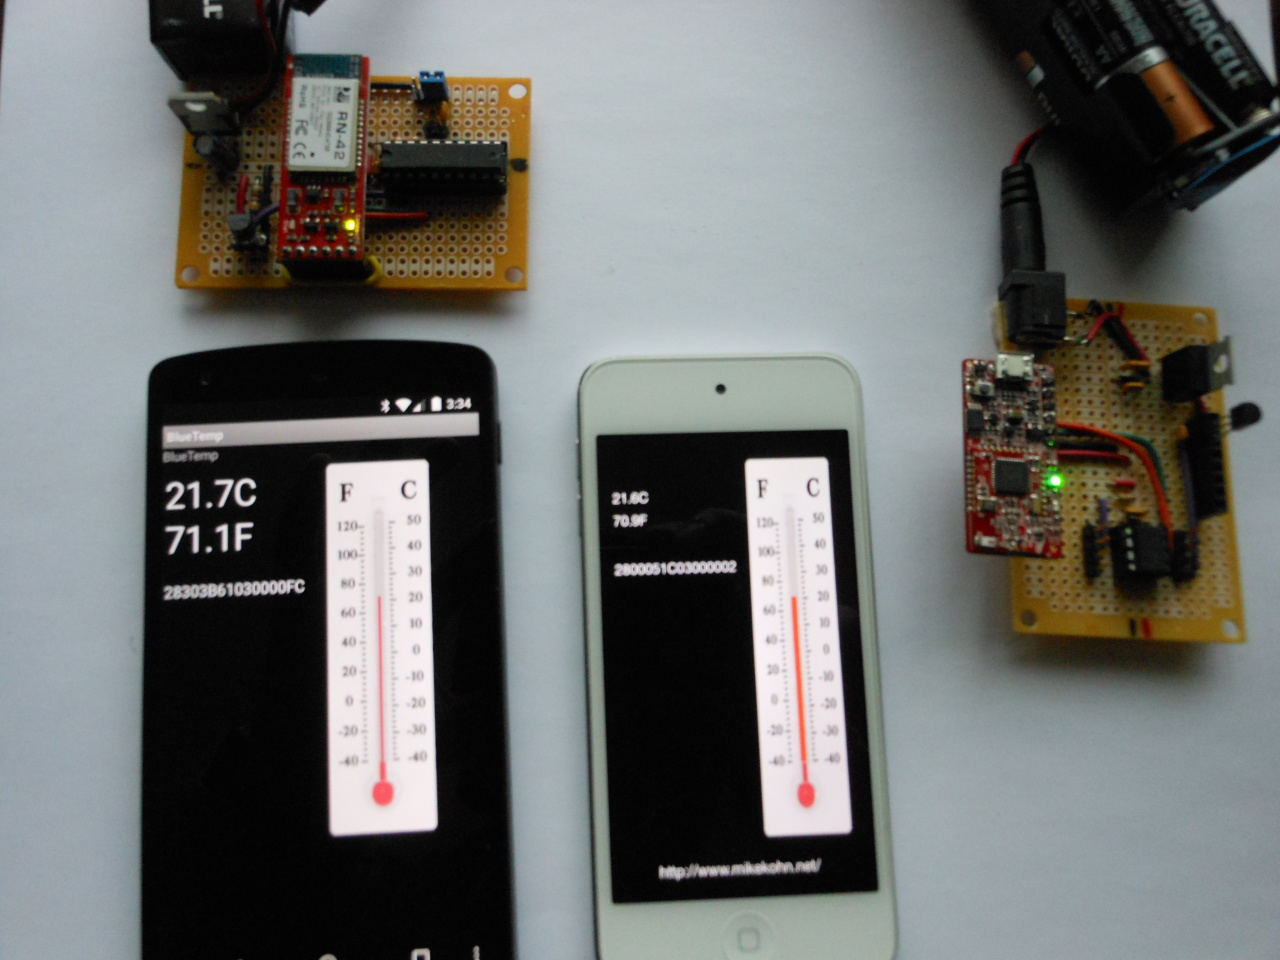 Michael Kohn Bluetooth Thermometer Bluetoothcircuit Nexus 5 And Ipod Touch Running Apps